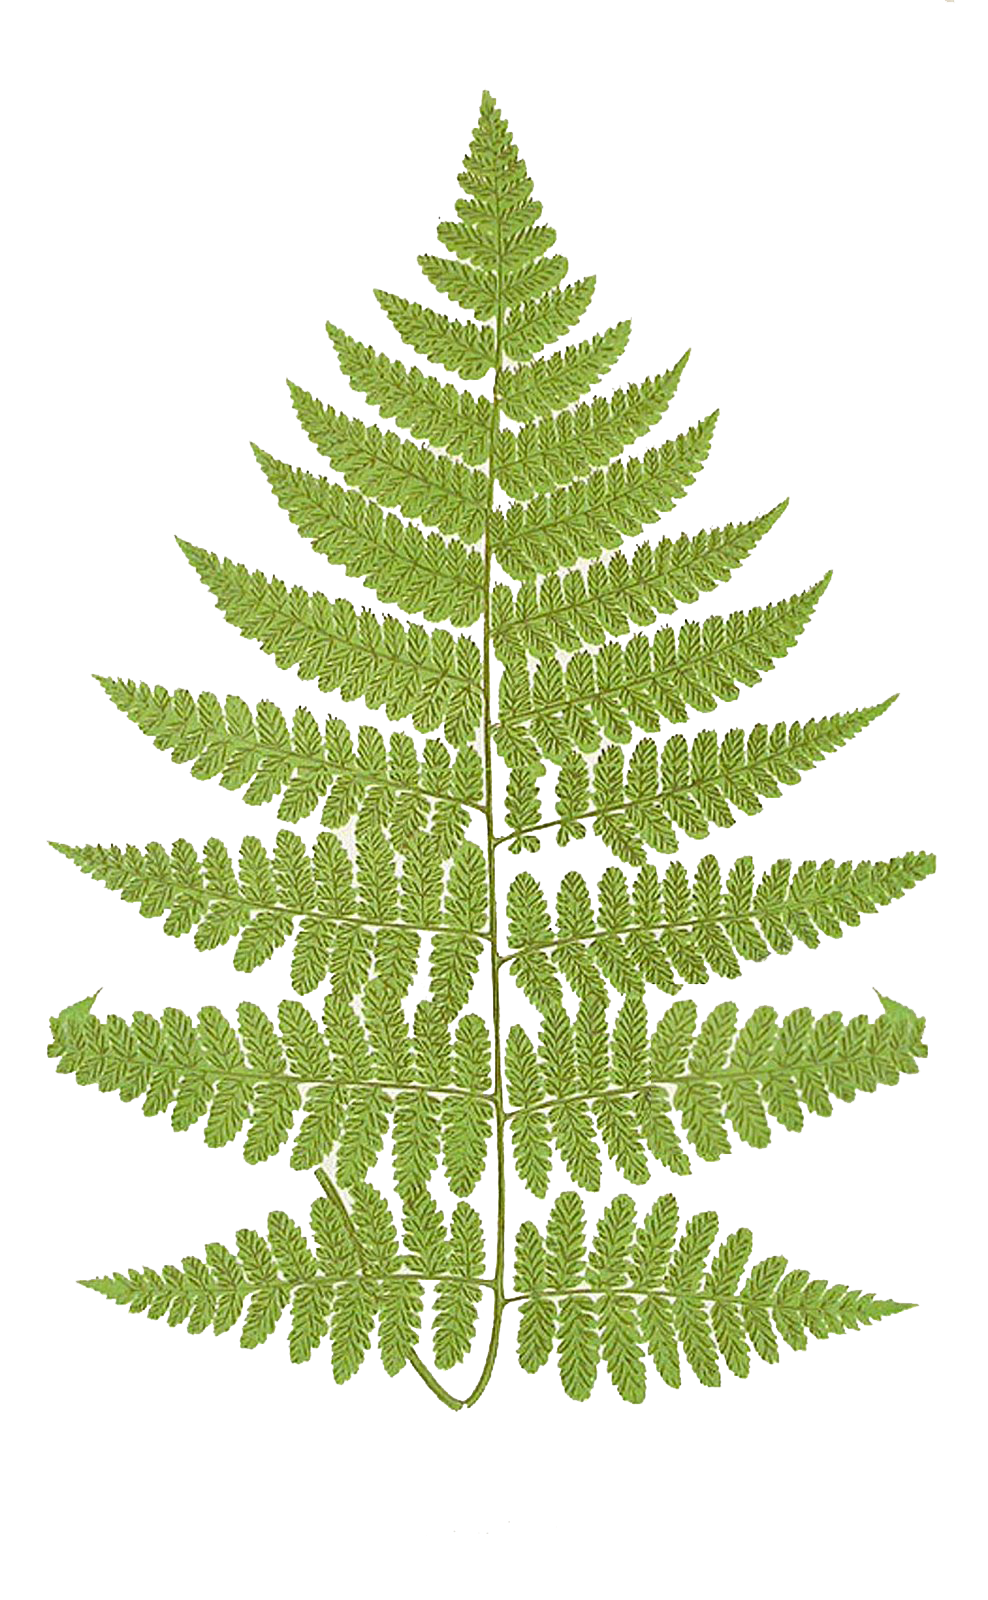 Transparent fern plant leaves. Ferns png pictures free